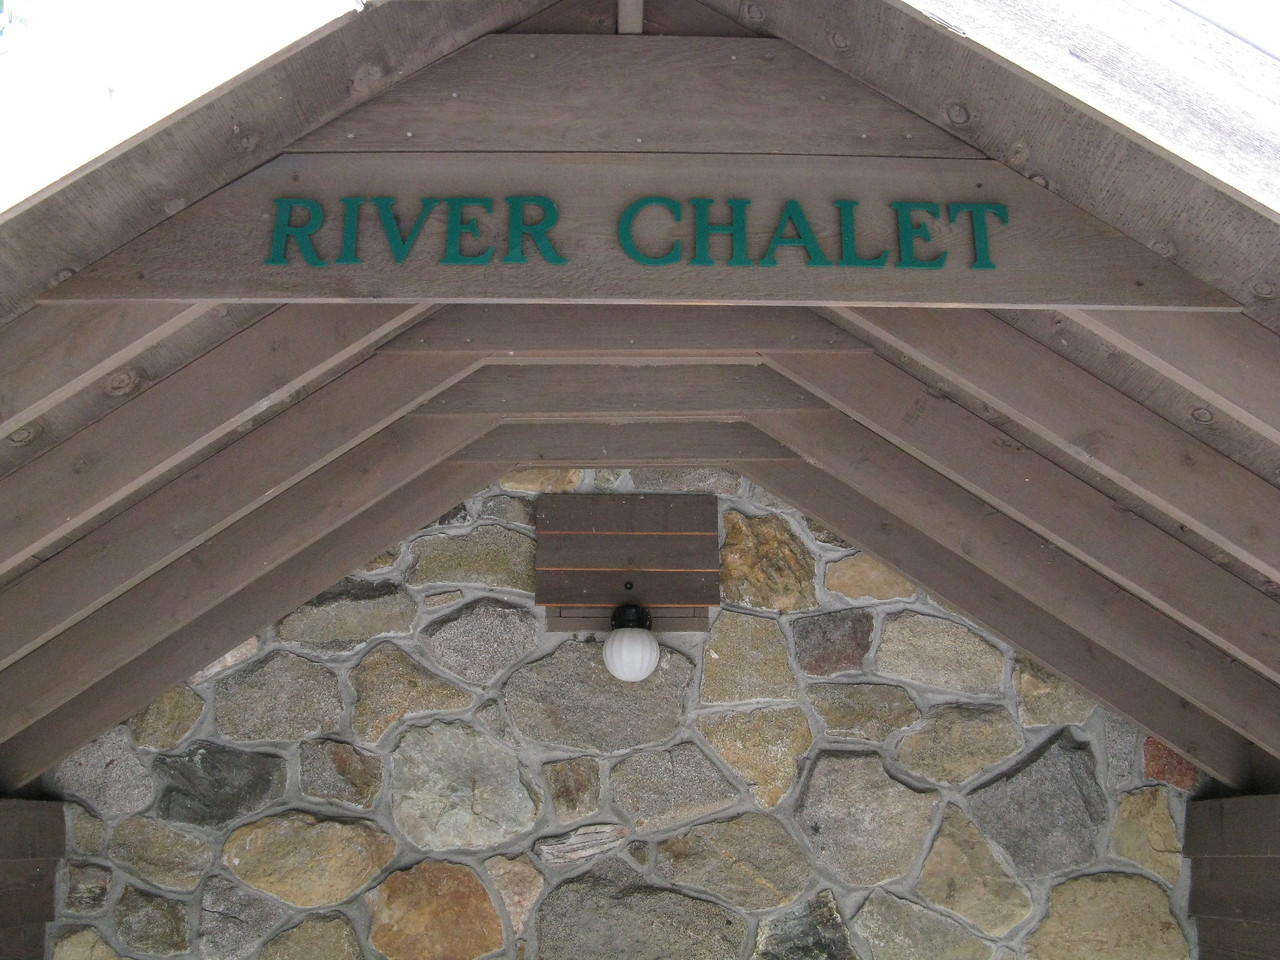 We rented from an agency called Destination Leavenworth, and this unit was called the River Chalet.